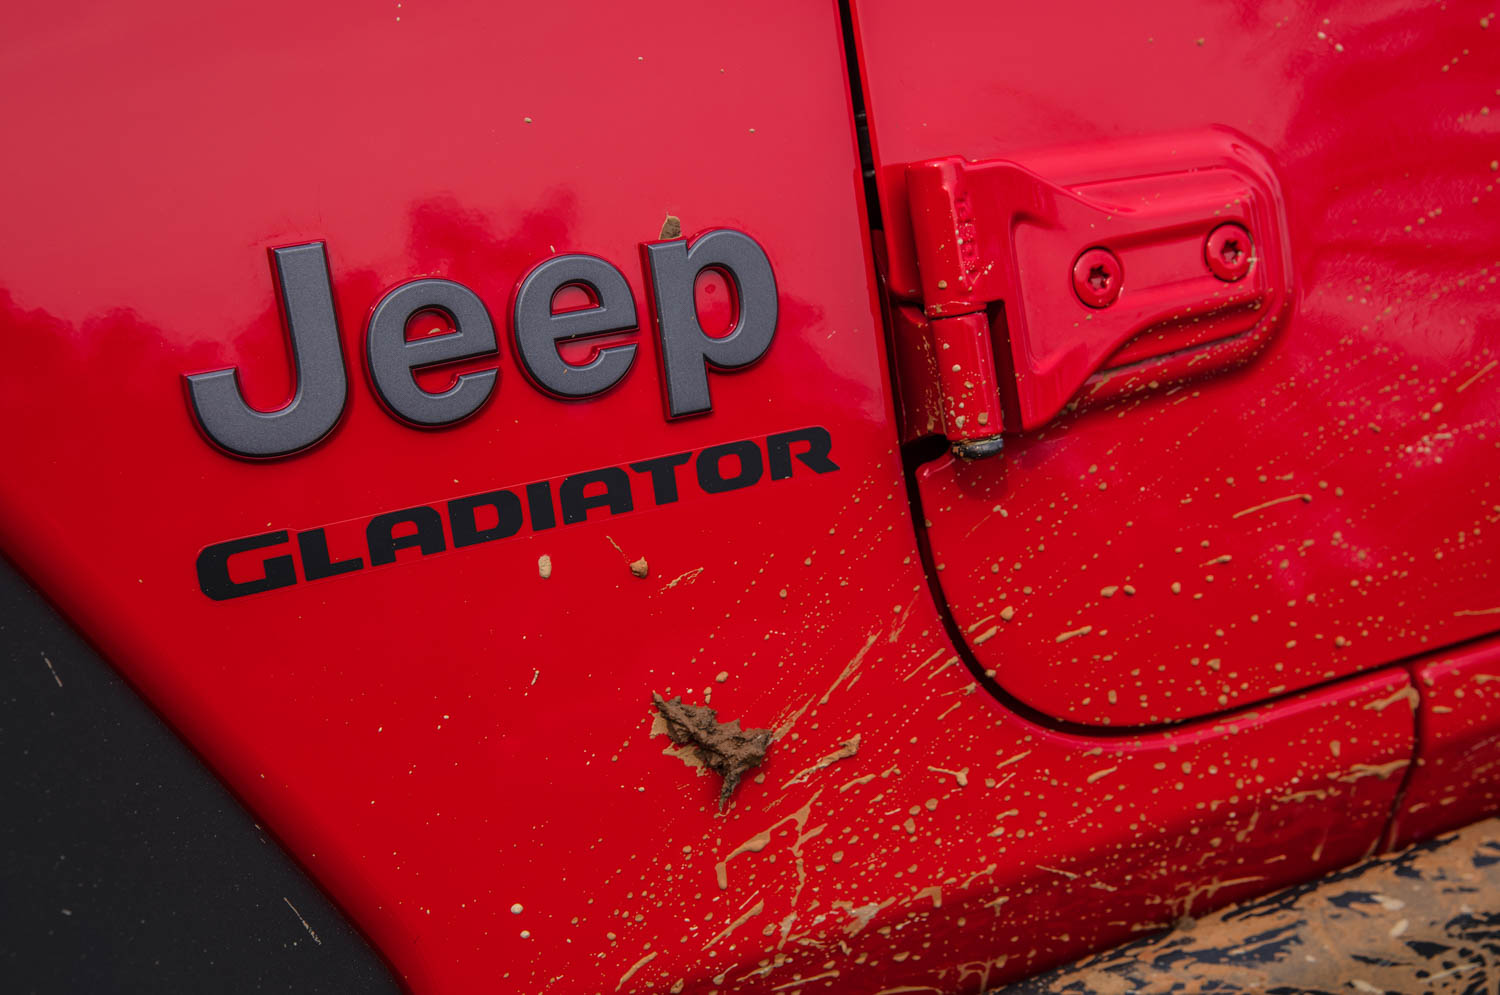 2020 Jeep Gladiator badge